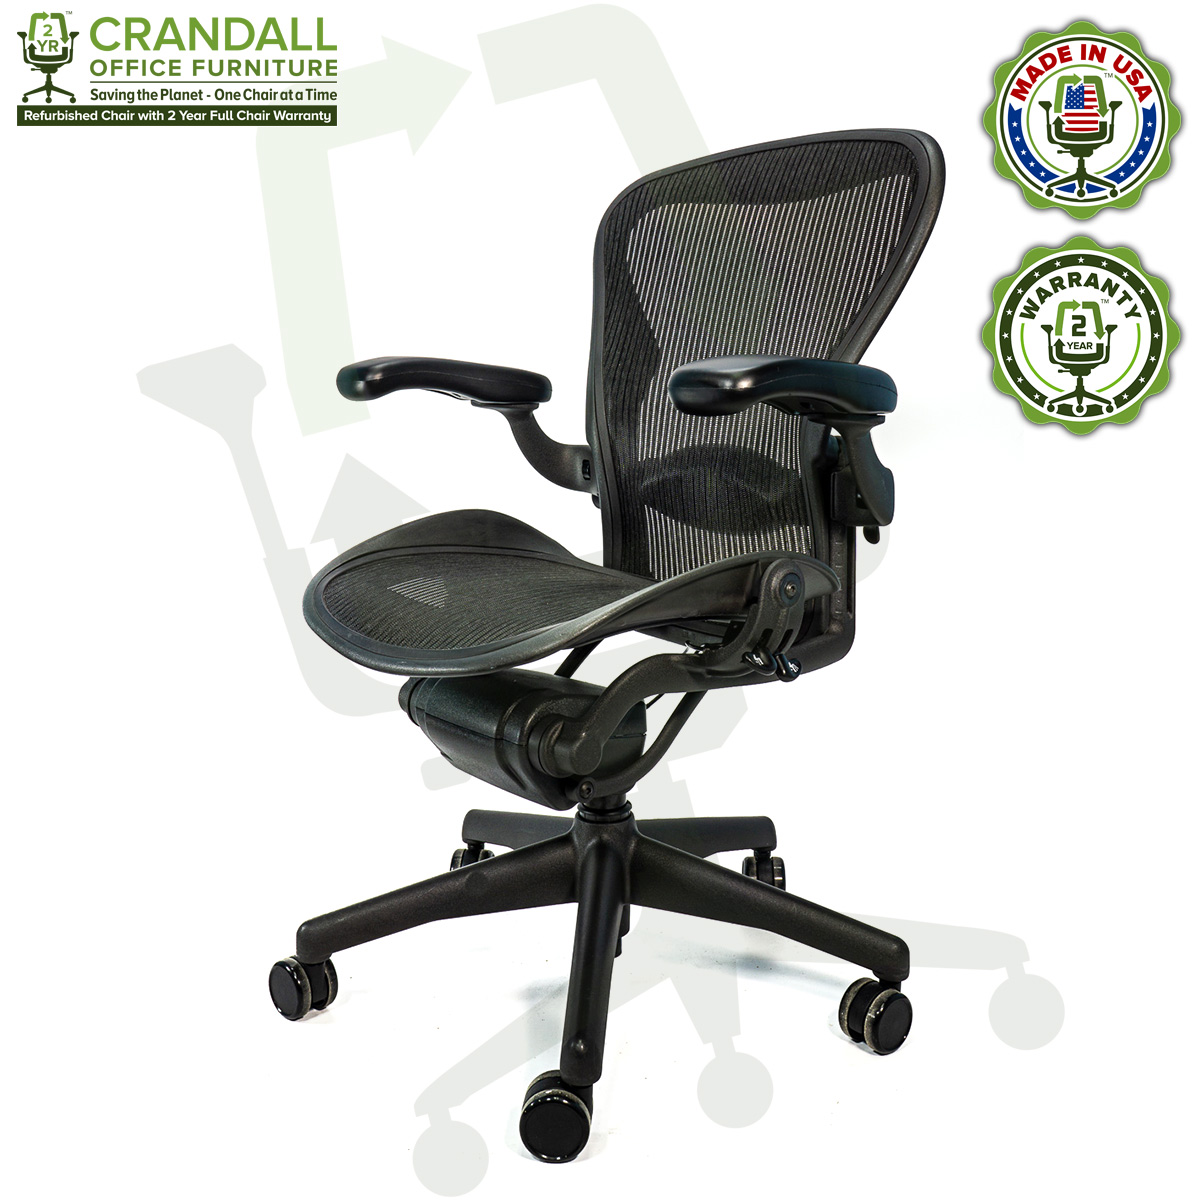 Crandall Office Furniture Refurbished Herman Miller Aeron Chair with 2 Year Warranty - 03